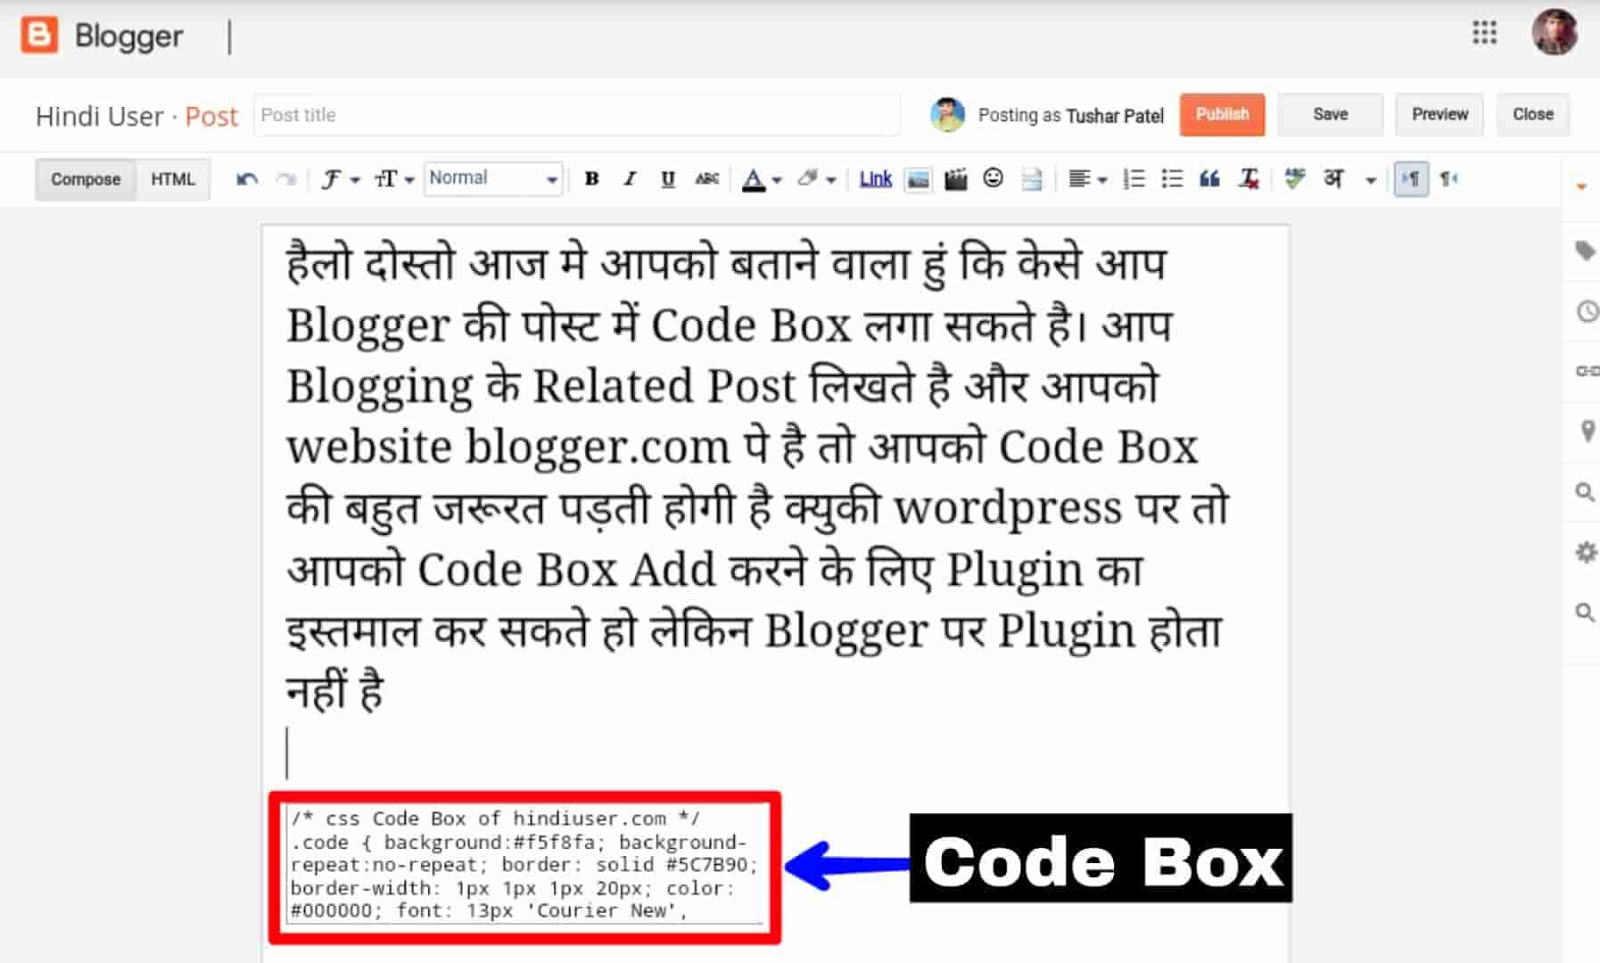 blogger post me code box kaise lagaye